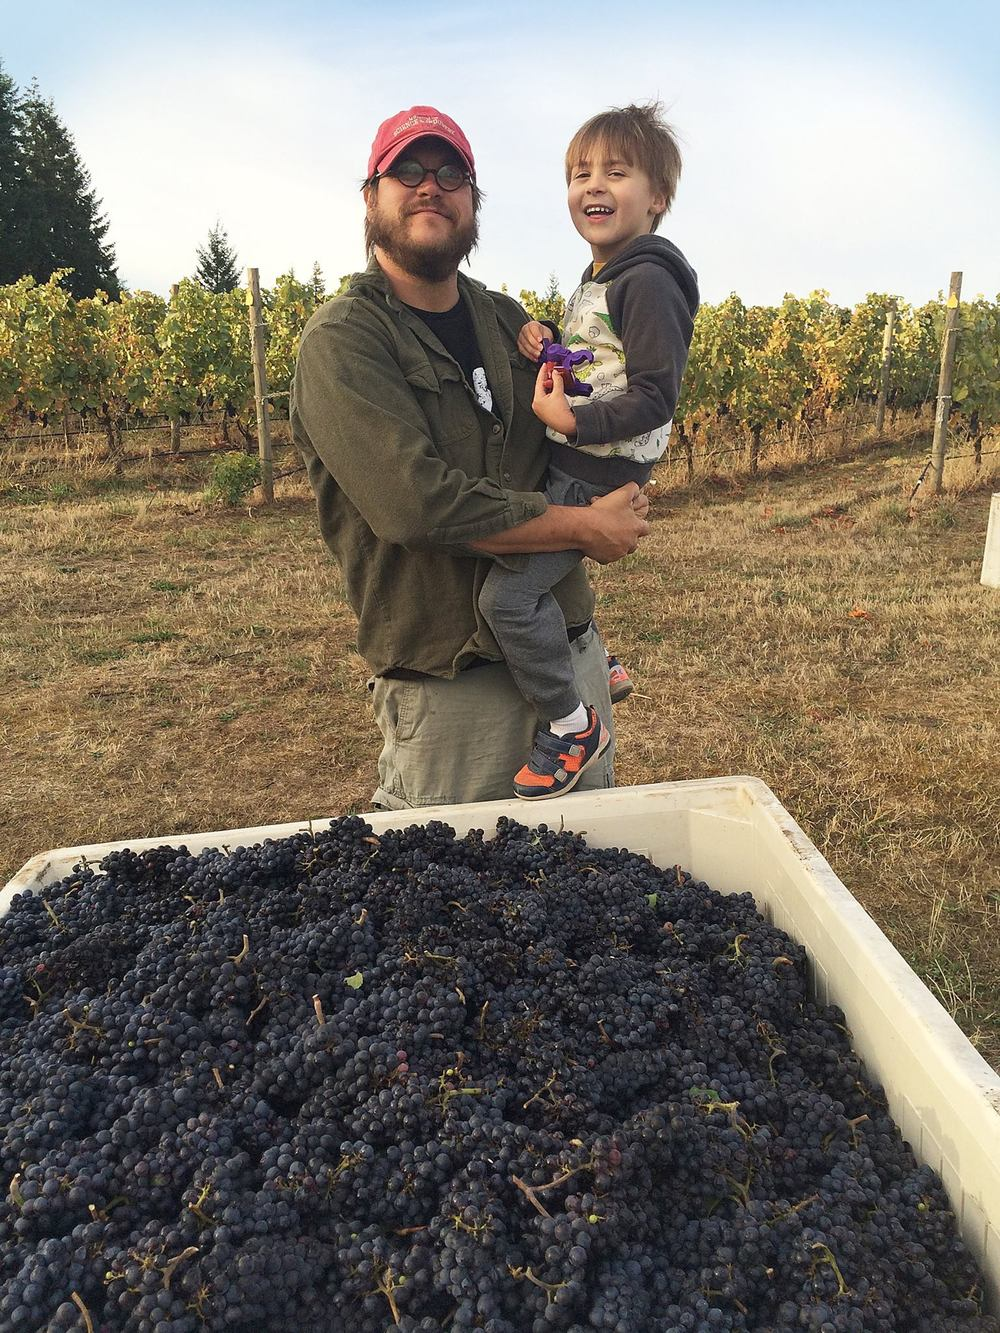 Winemaker/owner Chris Berg and his son, Theo, at the estate vineyard, harvest 2015.